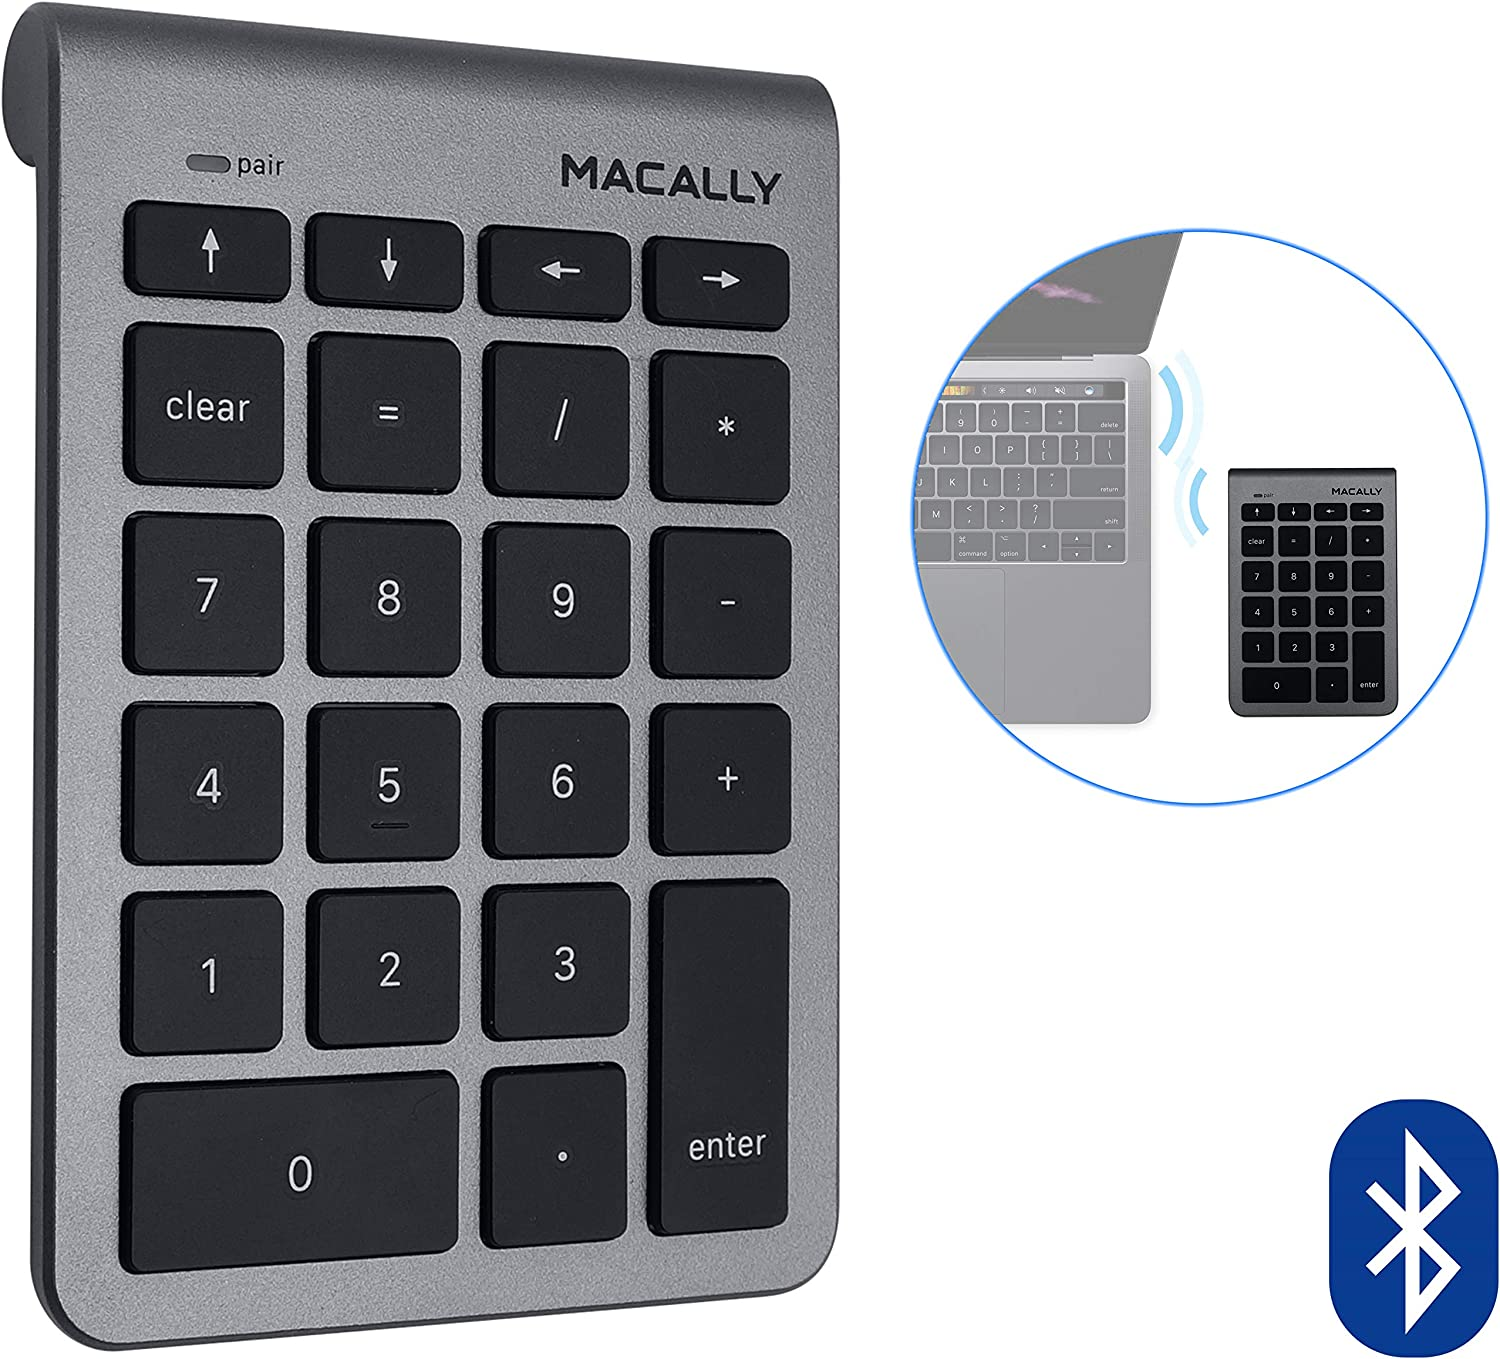 Macally 22 Keys Bluetooth Wireless Numeric Keypad for Mac with Arrow Keys & 10 Key Bluetooth Number Pad for Easy Data Entry - Number Keypad for MacBook Pro Air Laptop, iMac, Apple, iPhone, iPad Etc.